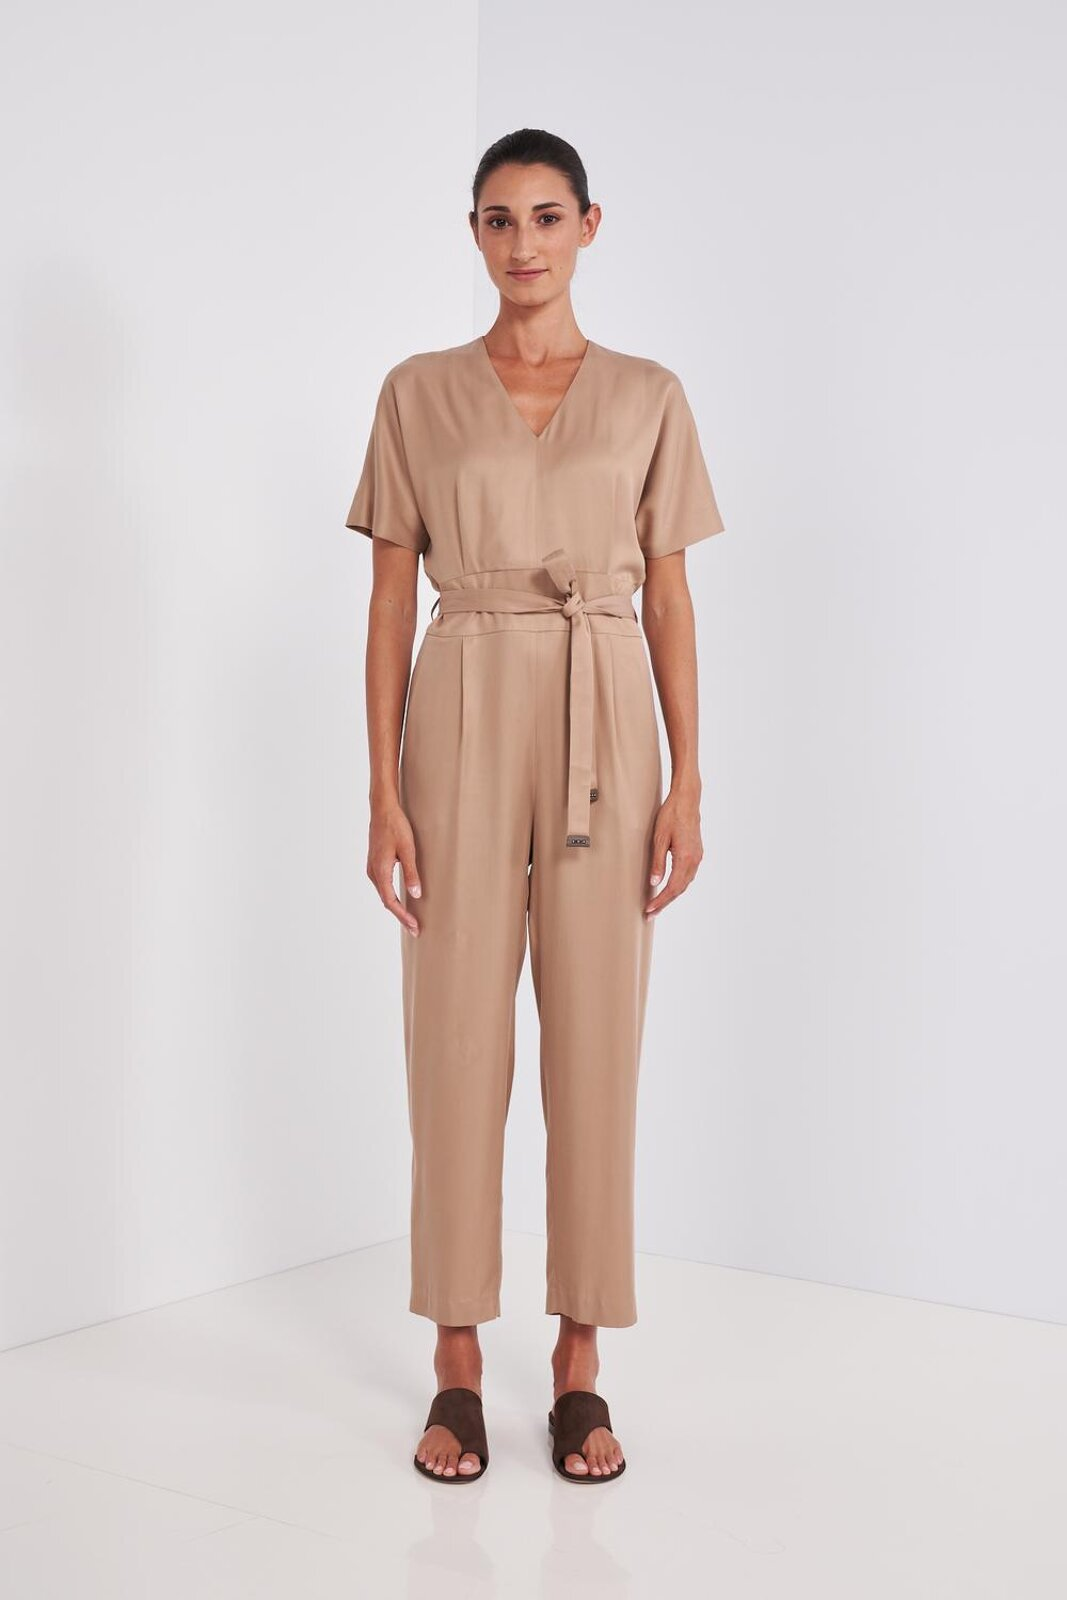 Suit In Soft Viscose Fabric And Short Sleeve Cupro. V-neckline, wide sleeves, fabric belt at the waist with leather details, trousers with pleats, two side pockets. Zip closure on the back. - Peserico